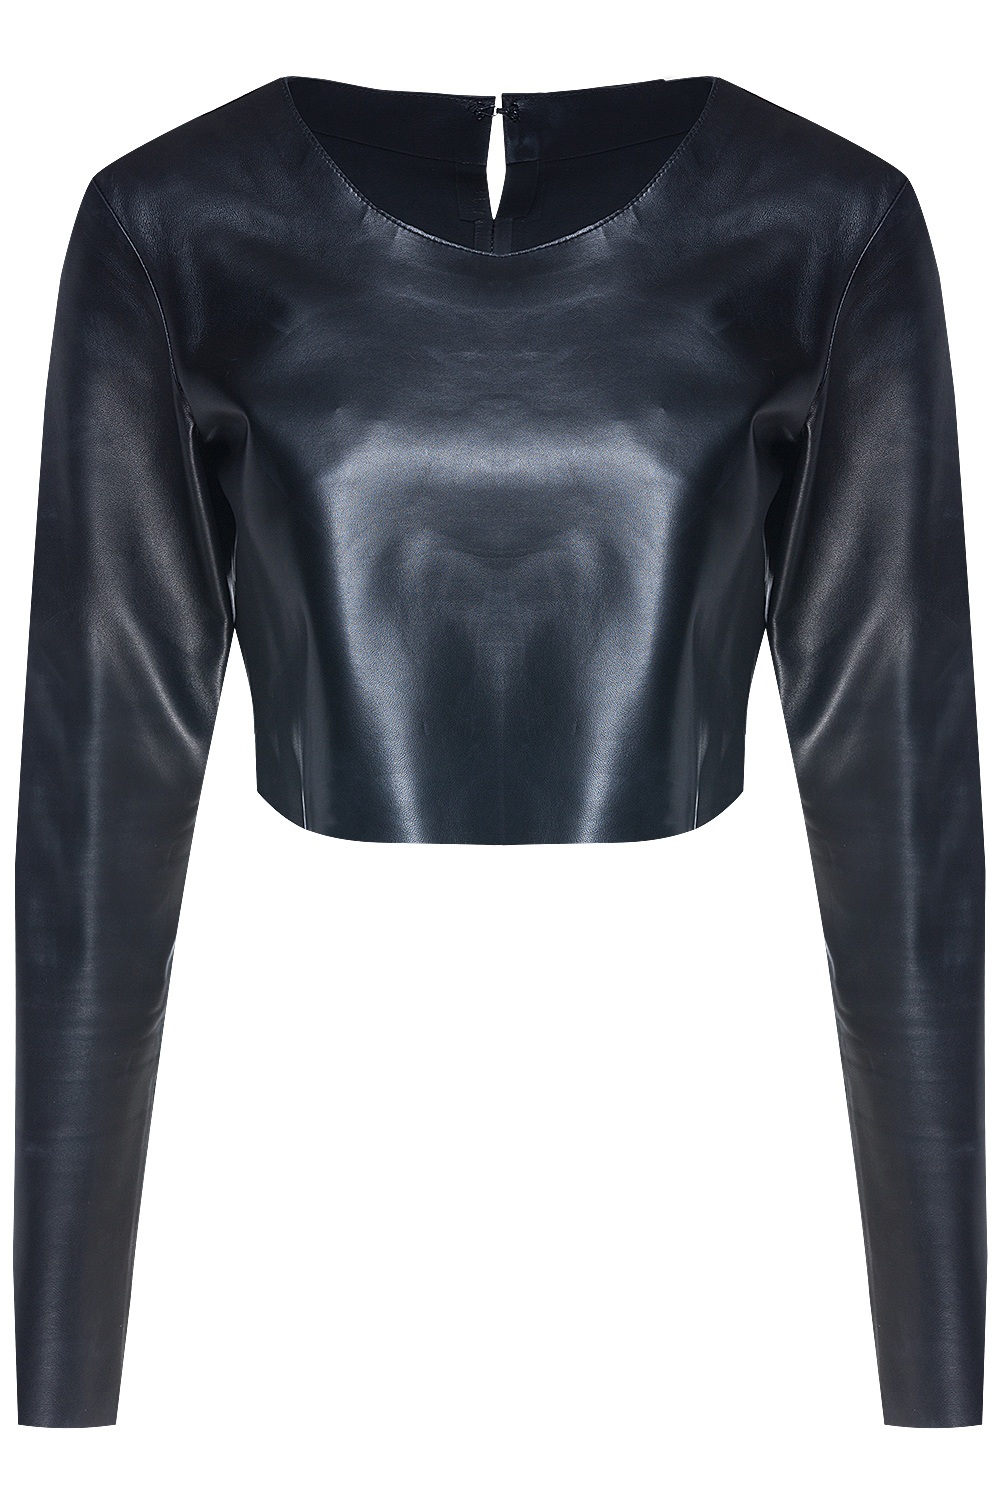 Jibe Oh Long Sleeve Leather Crop Top Black 365ist